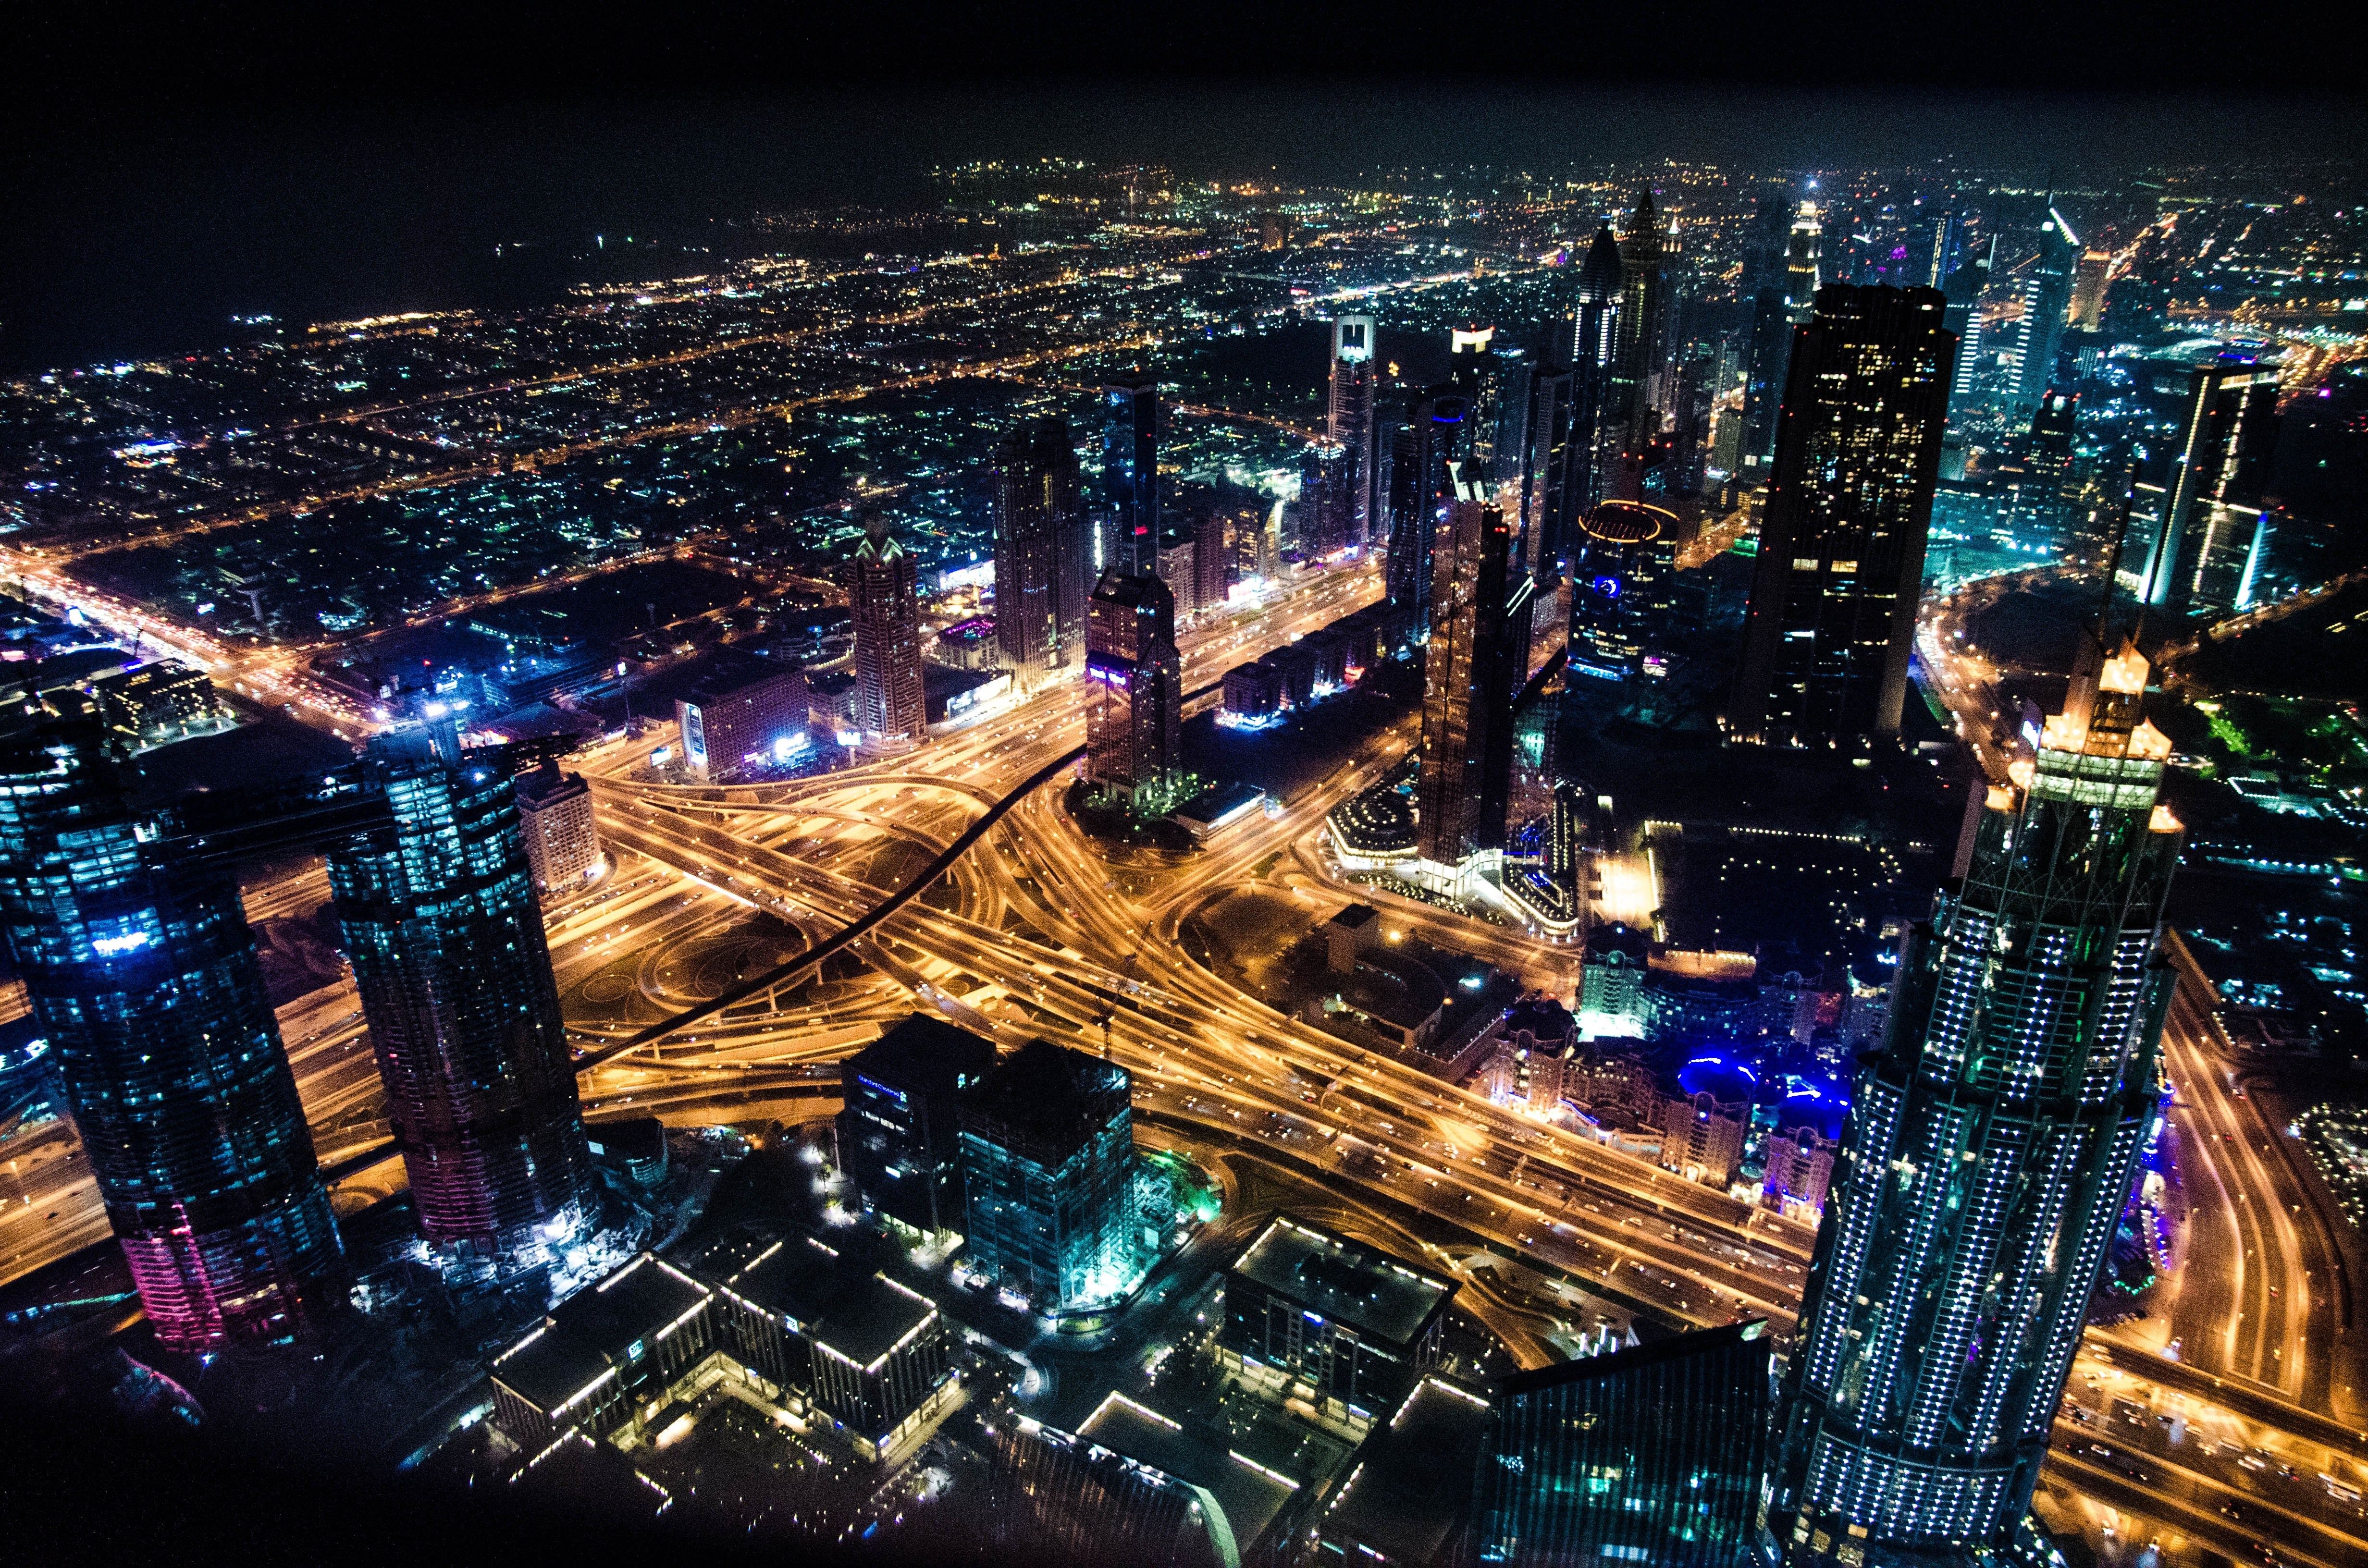 Timelapse Cityscape Photography during Night Time, Skyline, Night, Office, Outdoors, HQ Photo